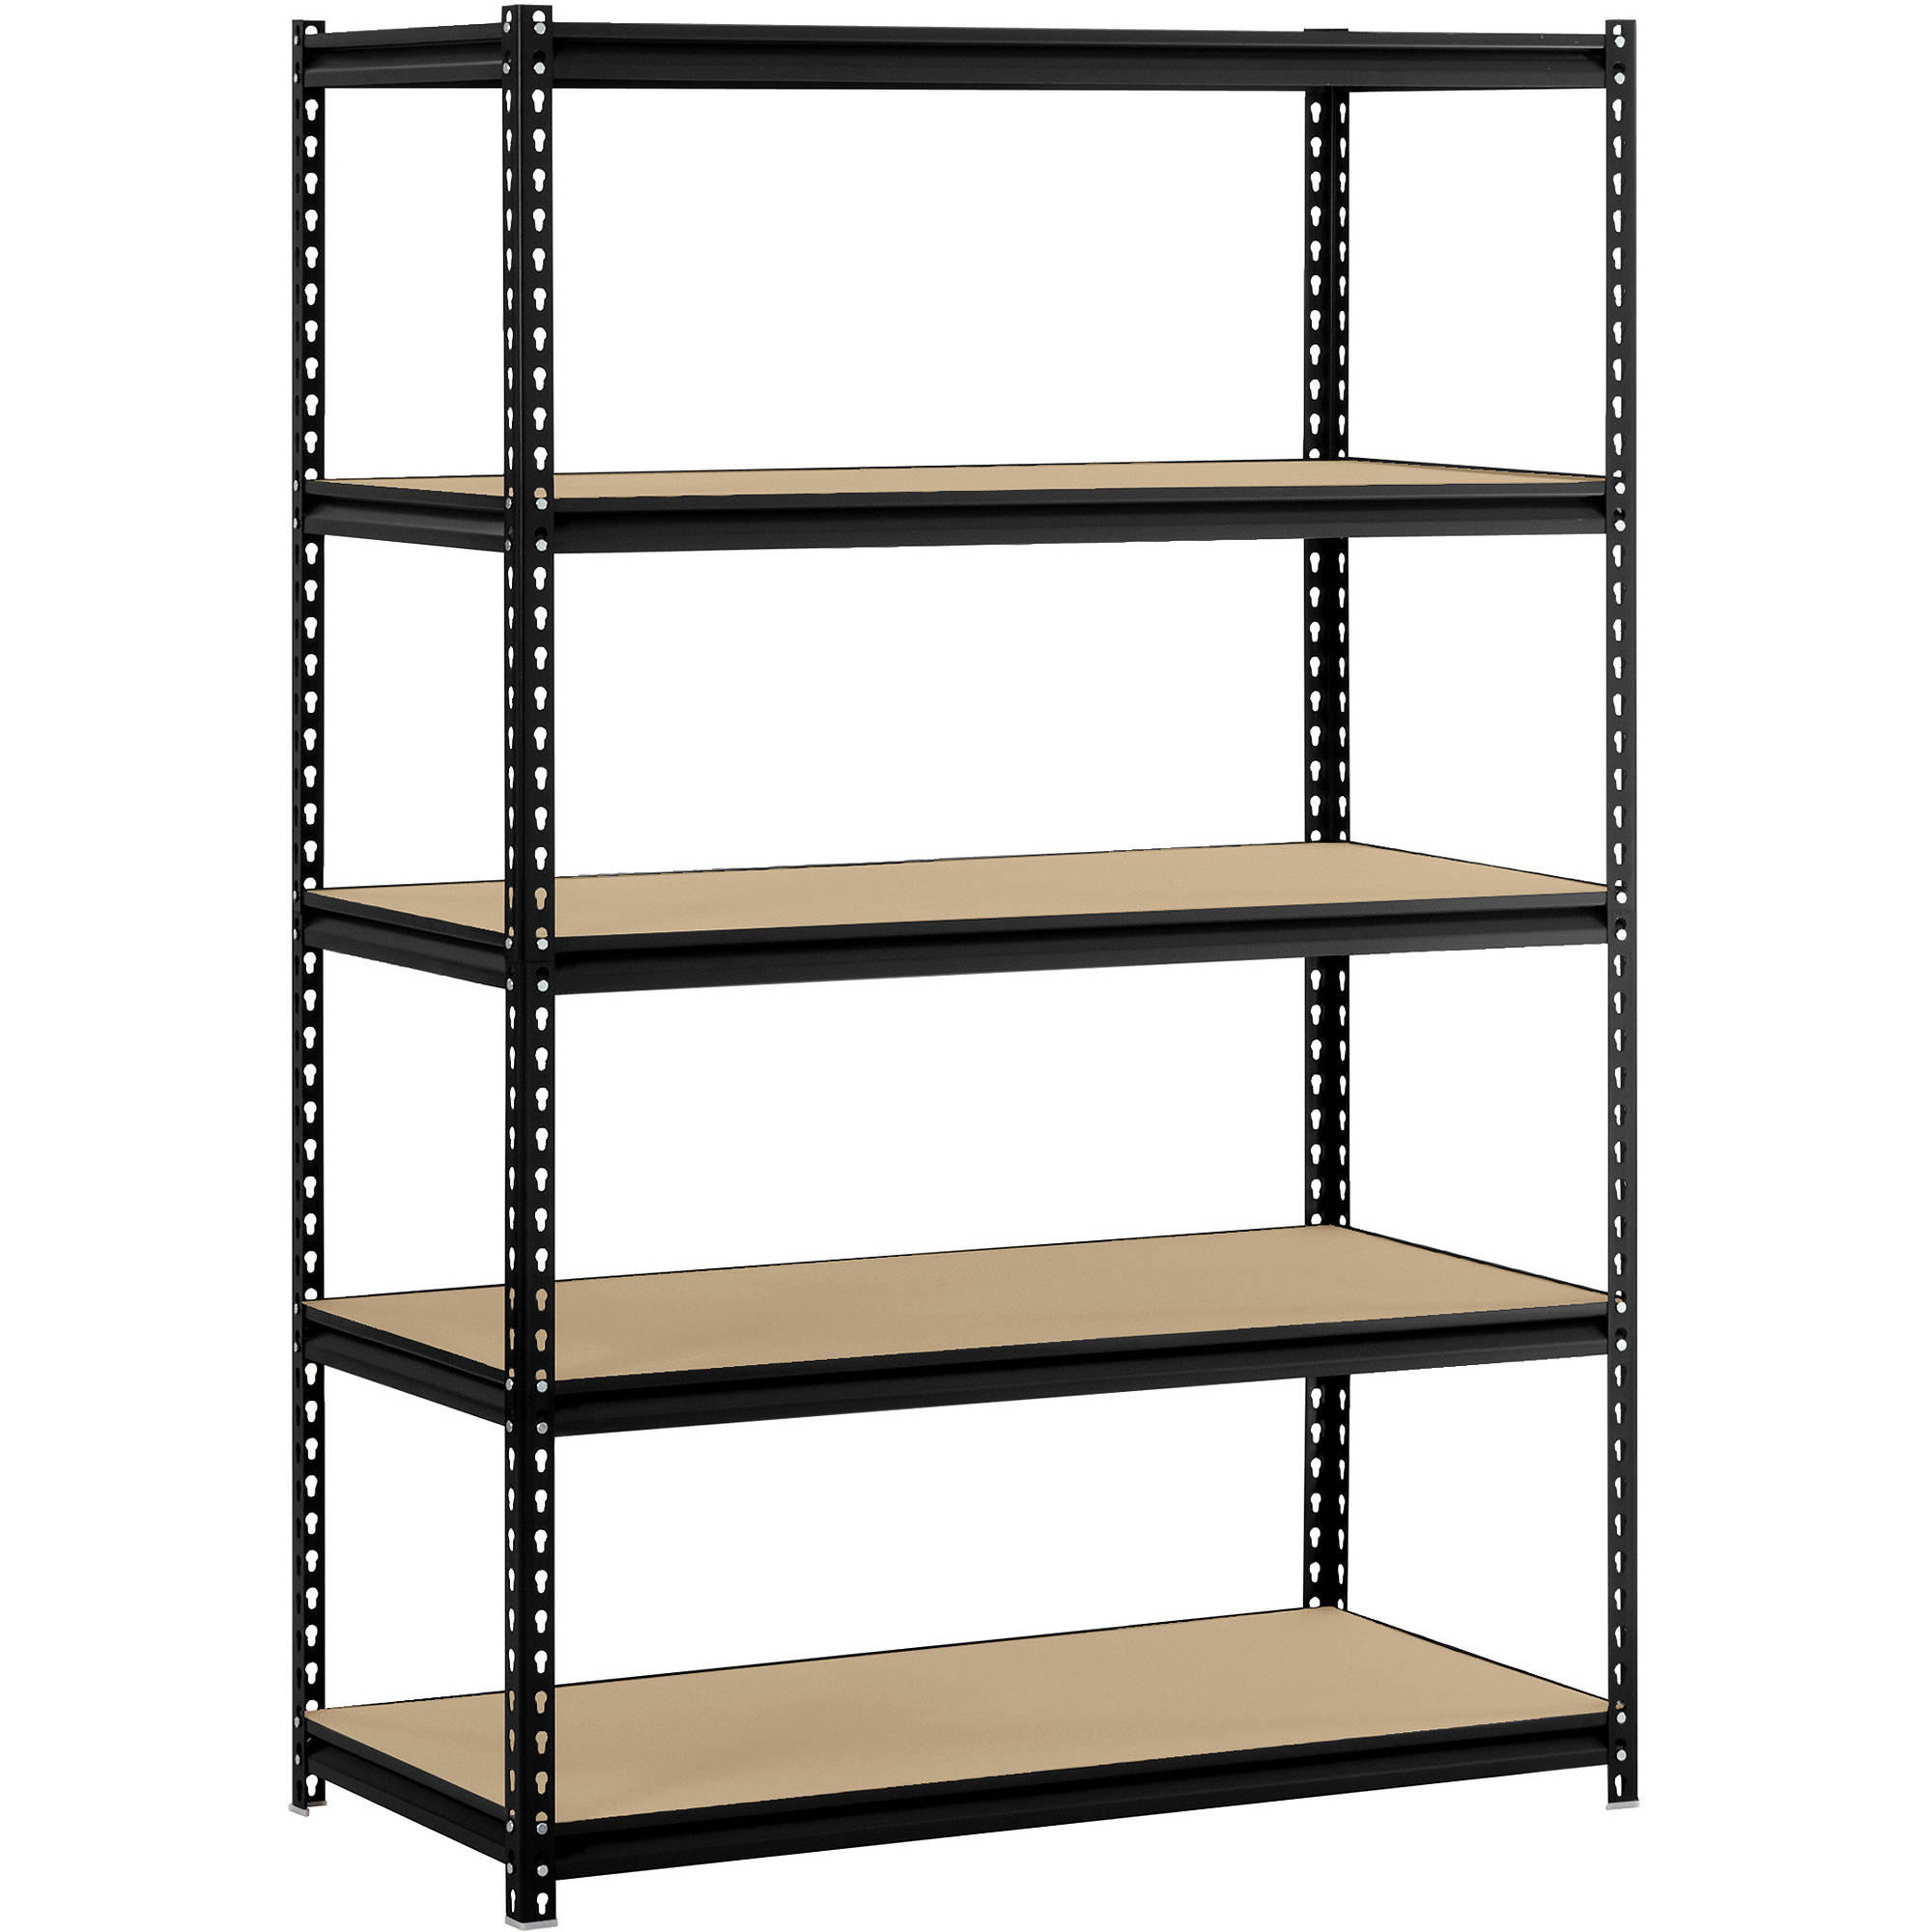 Edsal 5 shelf heavy duty steel shelving - Muscle Rack 48 W X 24 D X 72 H 5 Shelf Steel Shelving Black Walmart Com